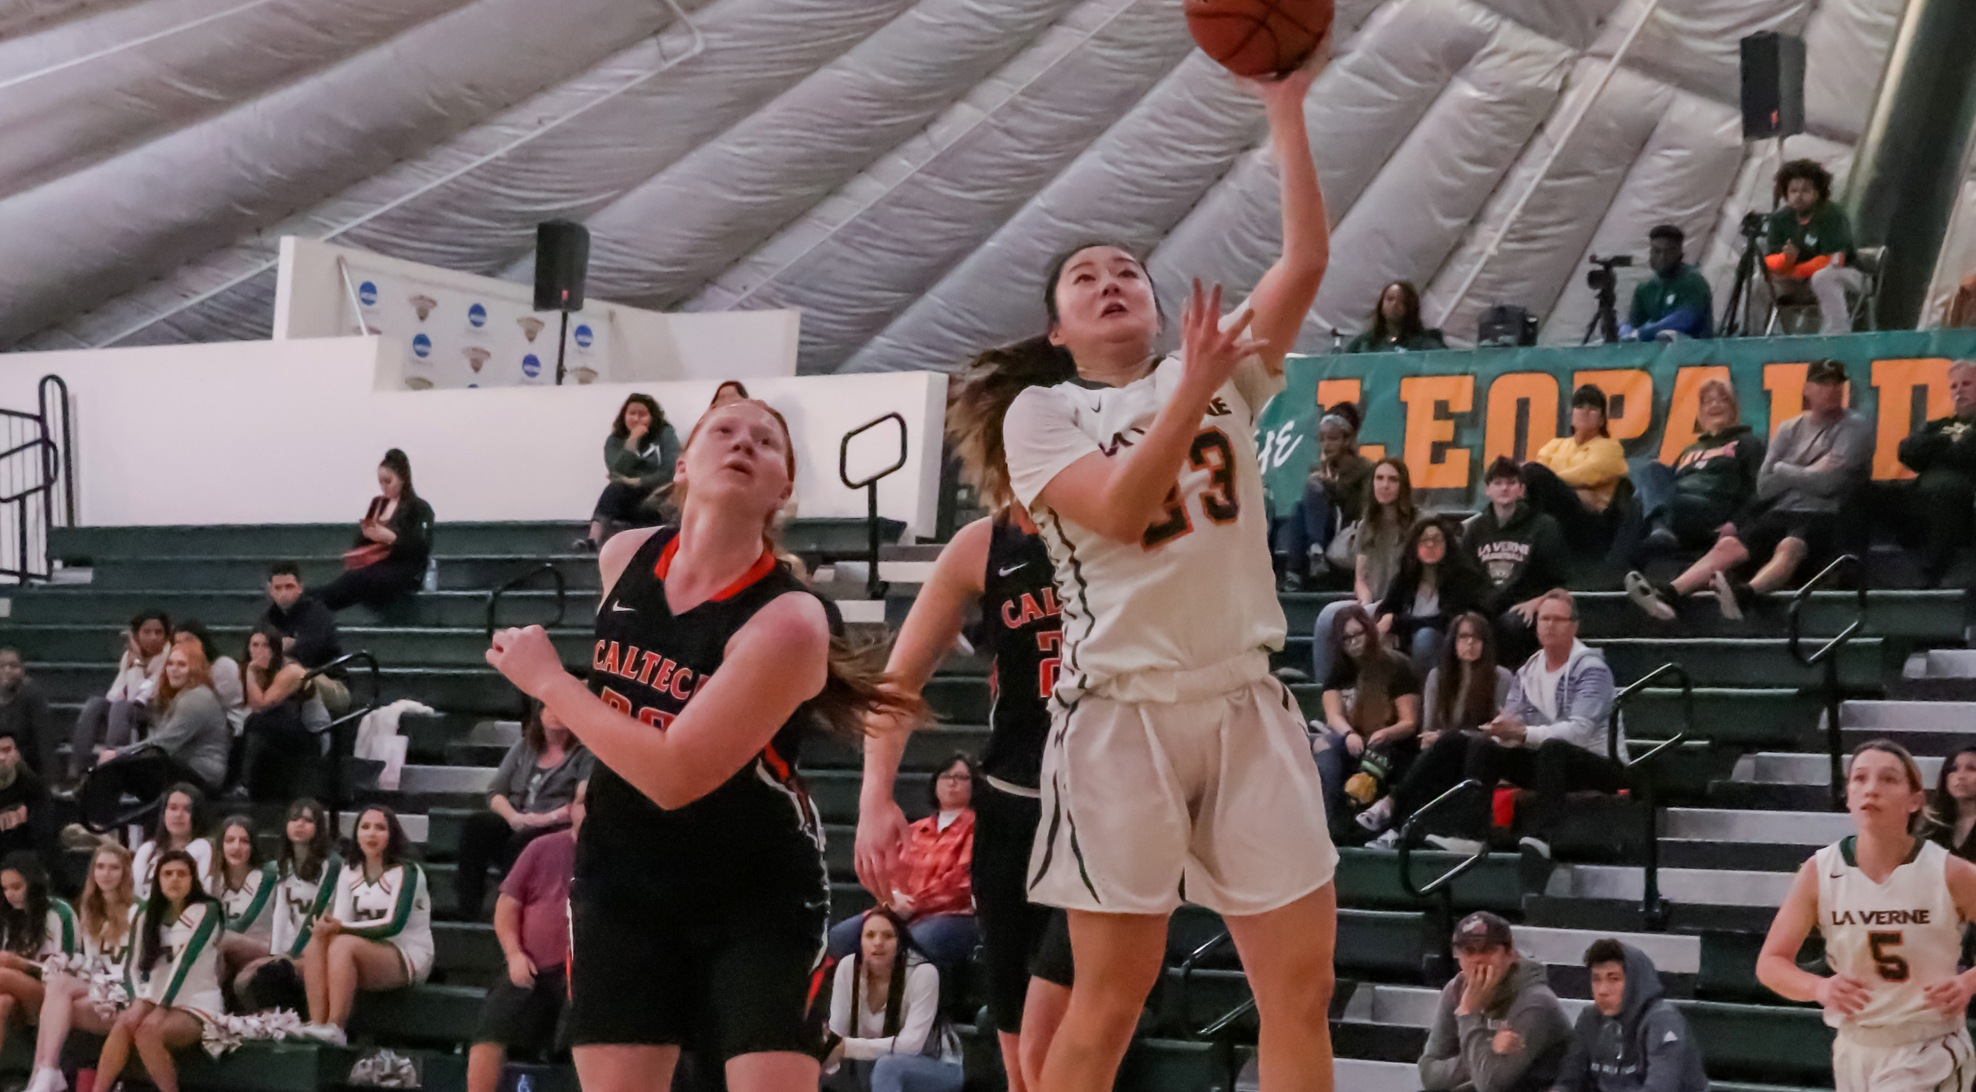 La Verne edges Caltech 100-98 in 4OT thriller